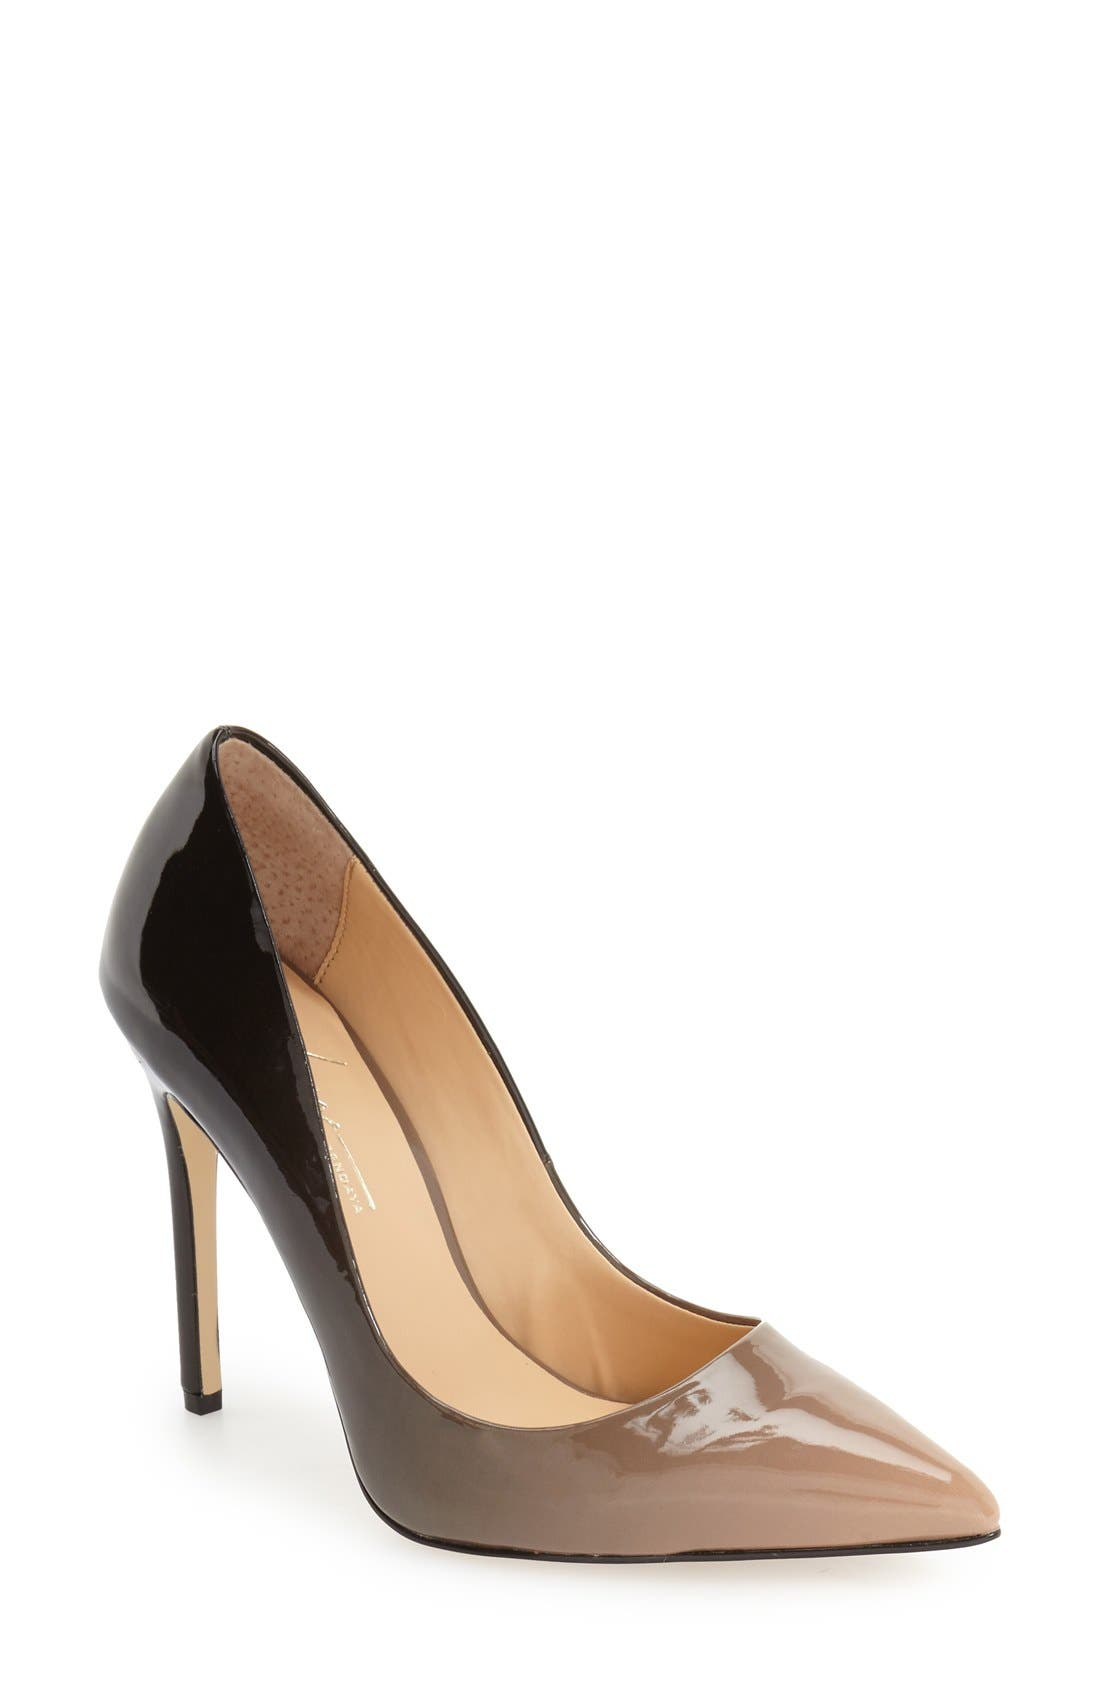 by Zendaya 'Atmore II' Pointy Toe Pump,                             Main thumbnail 1, color,                             250